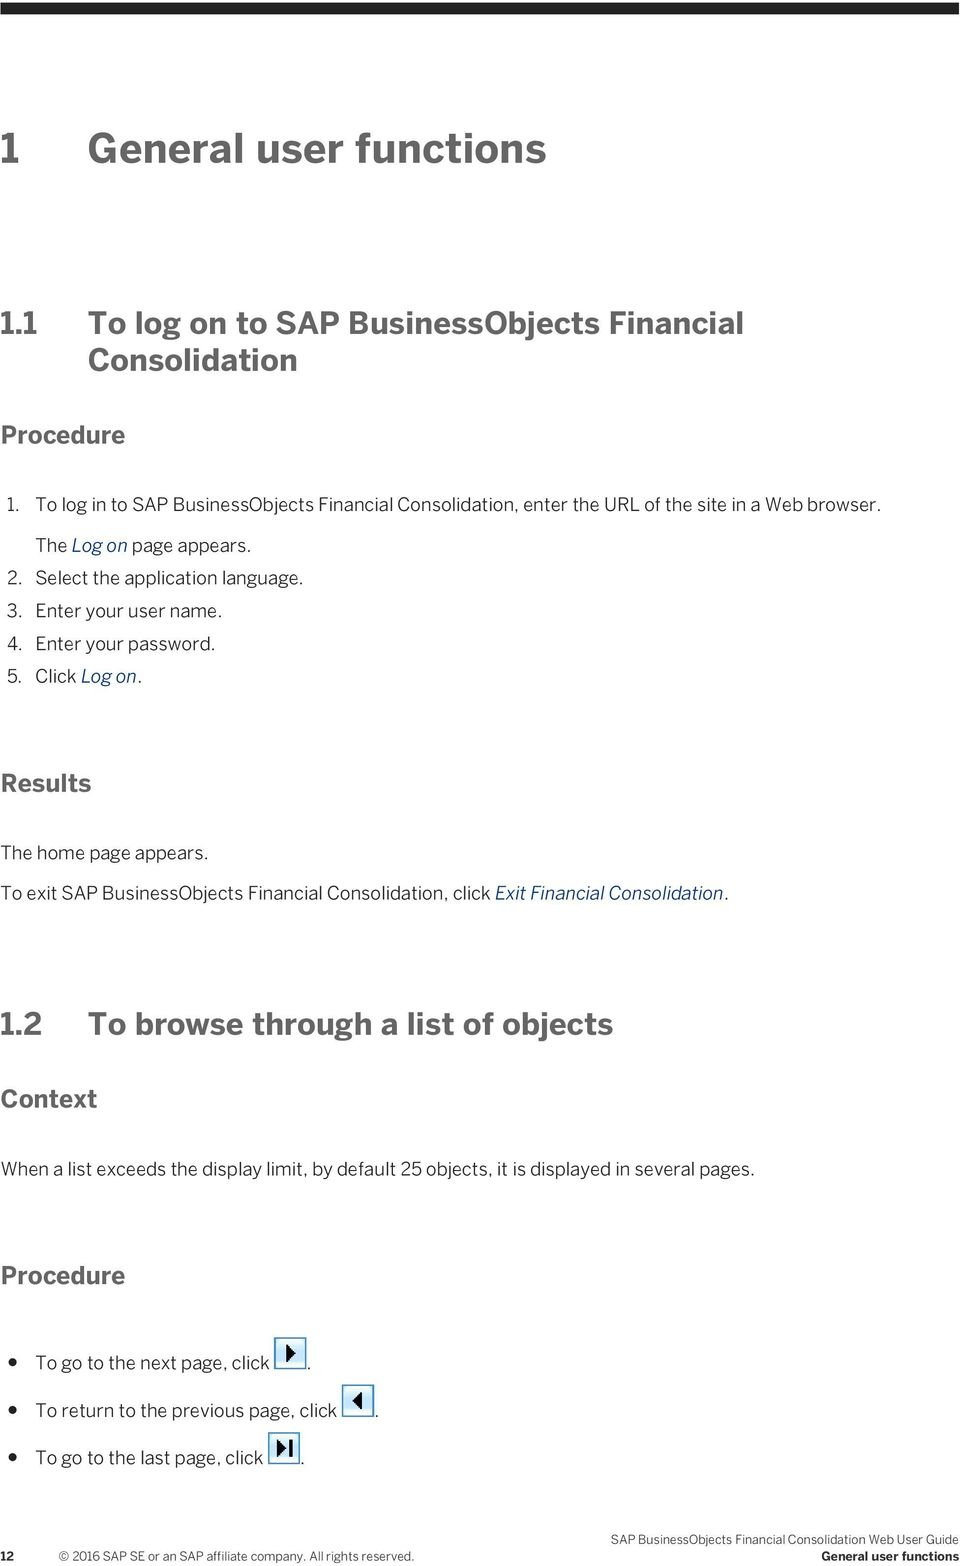 To exit SAP BusinessObjects Financial Consolidation, click Exit Financial Consolidation. 1.